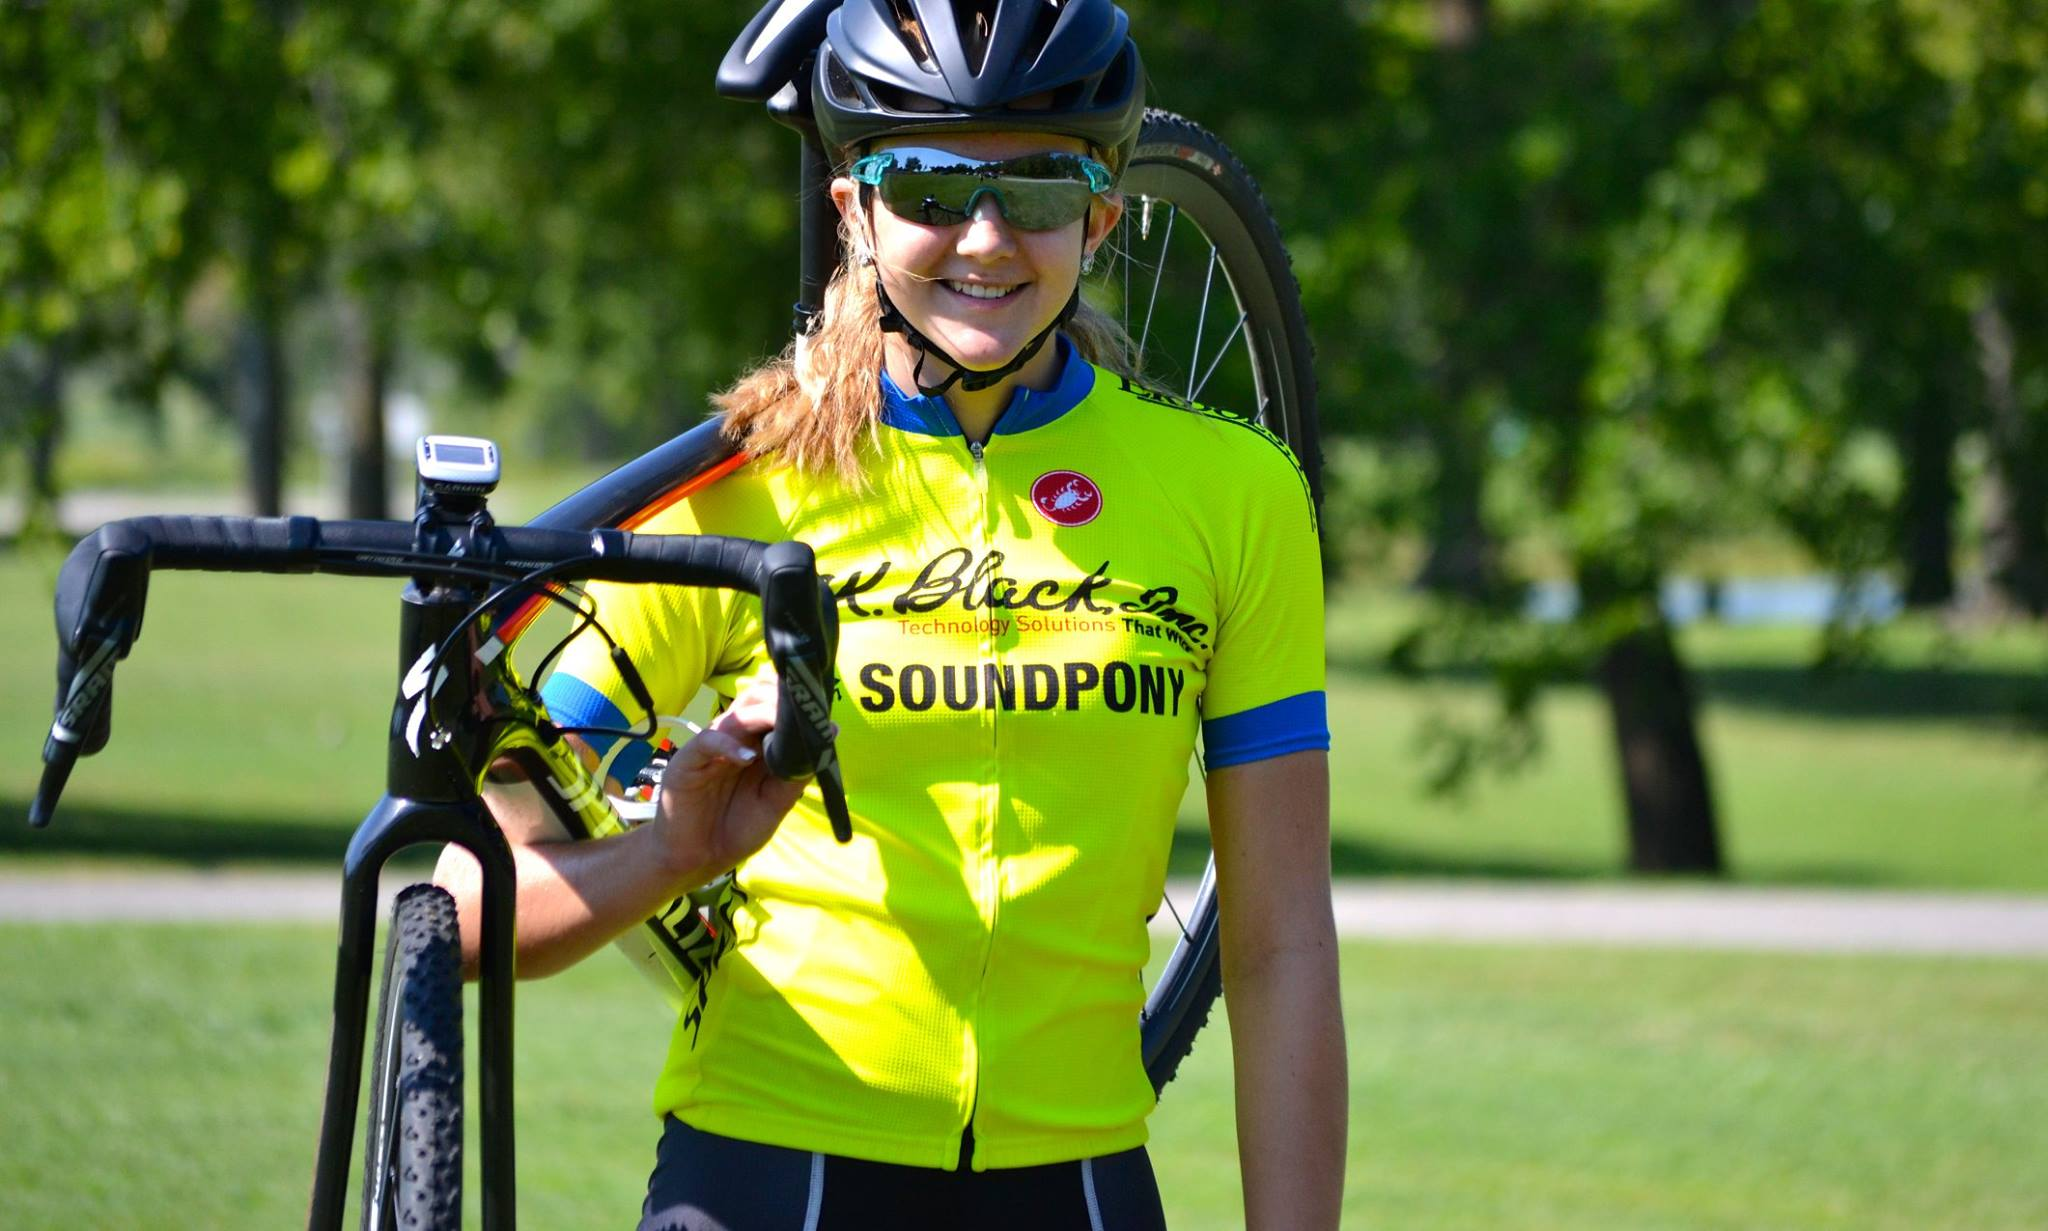 Elite cyclocross team SPCX p/b R.K. Black member 14-year-old Aubrey Drummond.